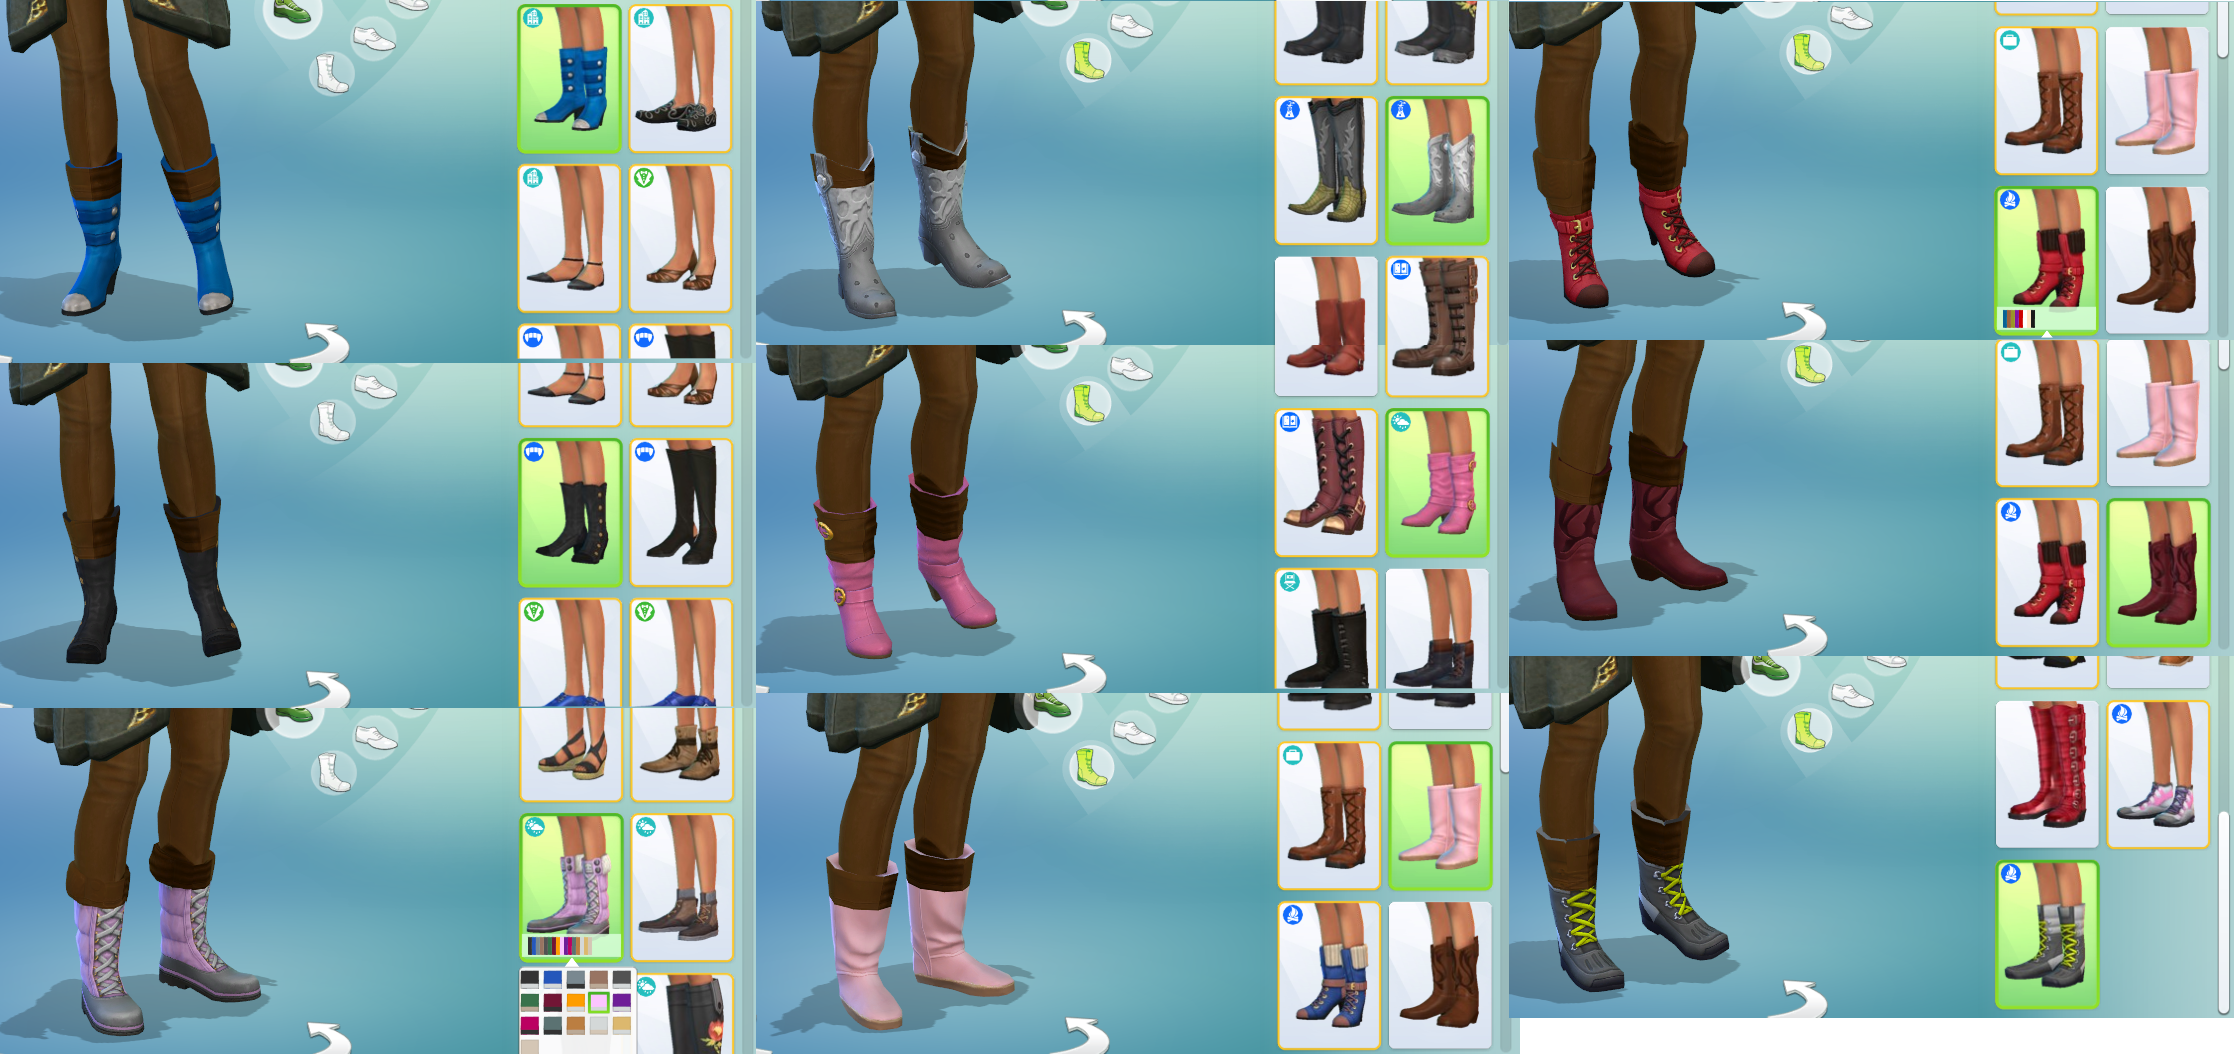 9 boots.png